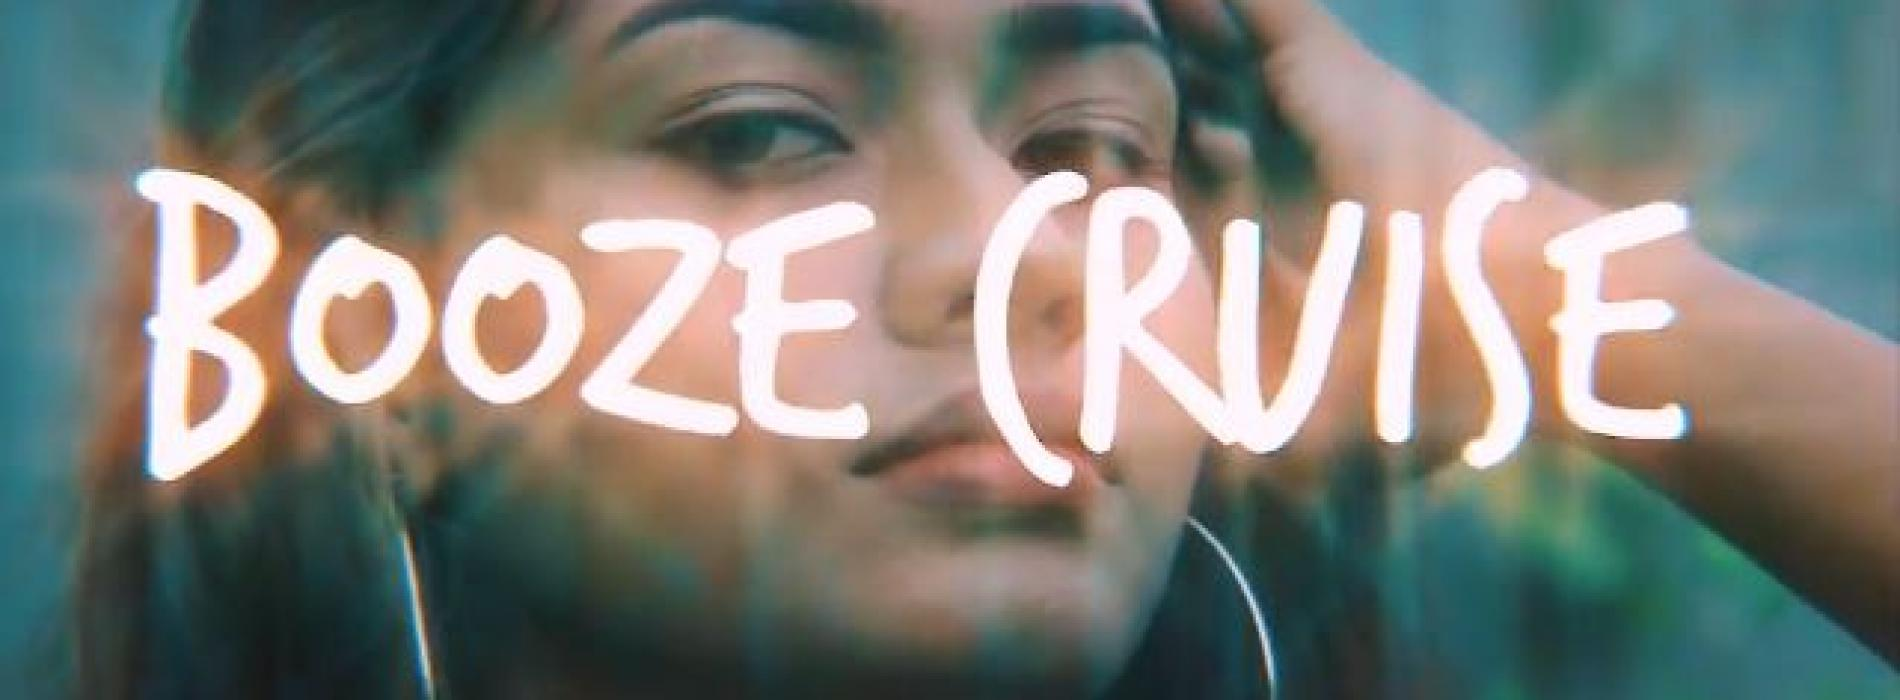 New Music : Blunt Poet – Booze Cruise (Prod By Heckno) Official Music Video